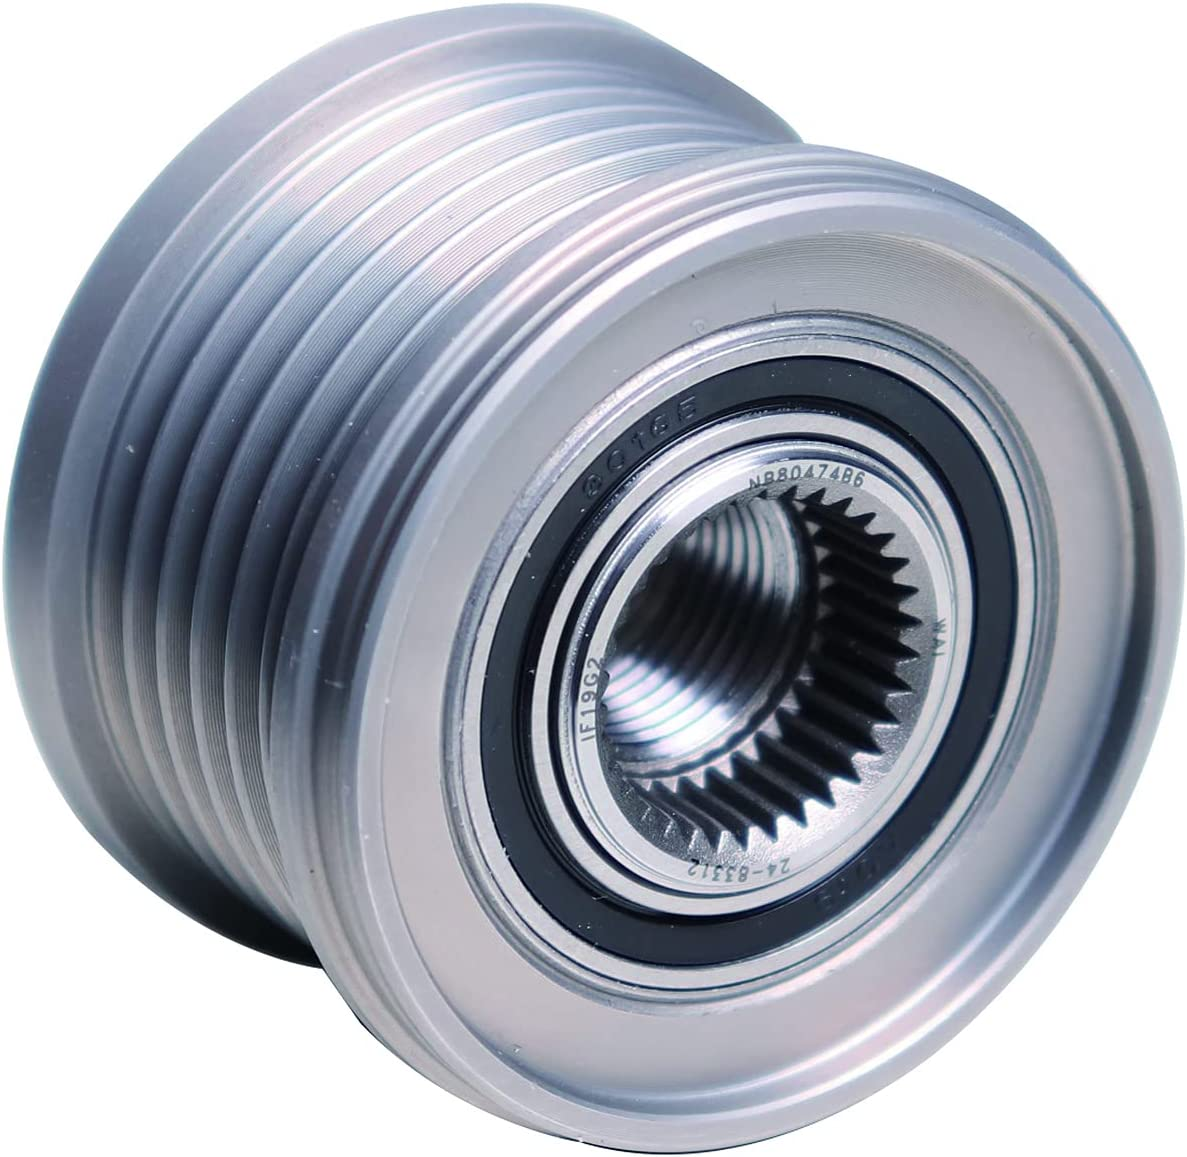 New Clutch Pulley Replacement Now free shipping for 6 5350 SH01-18-330 Mazda Dealing full price reduction 12-19